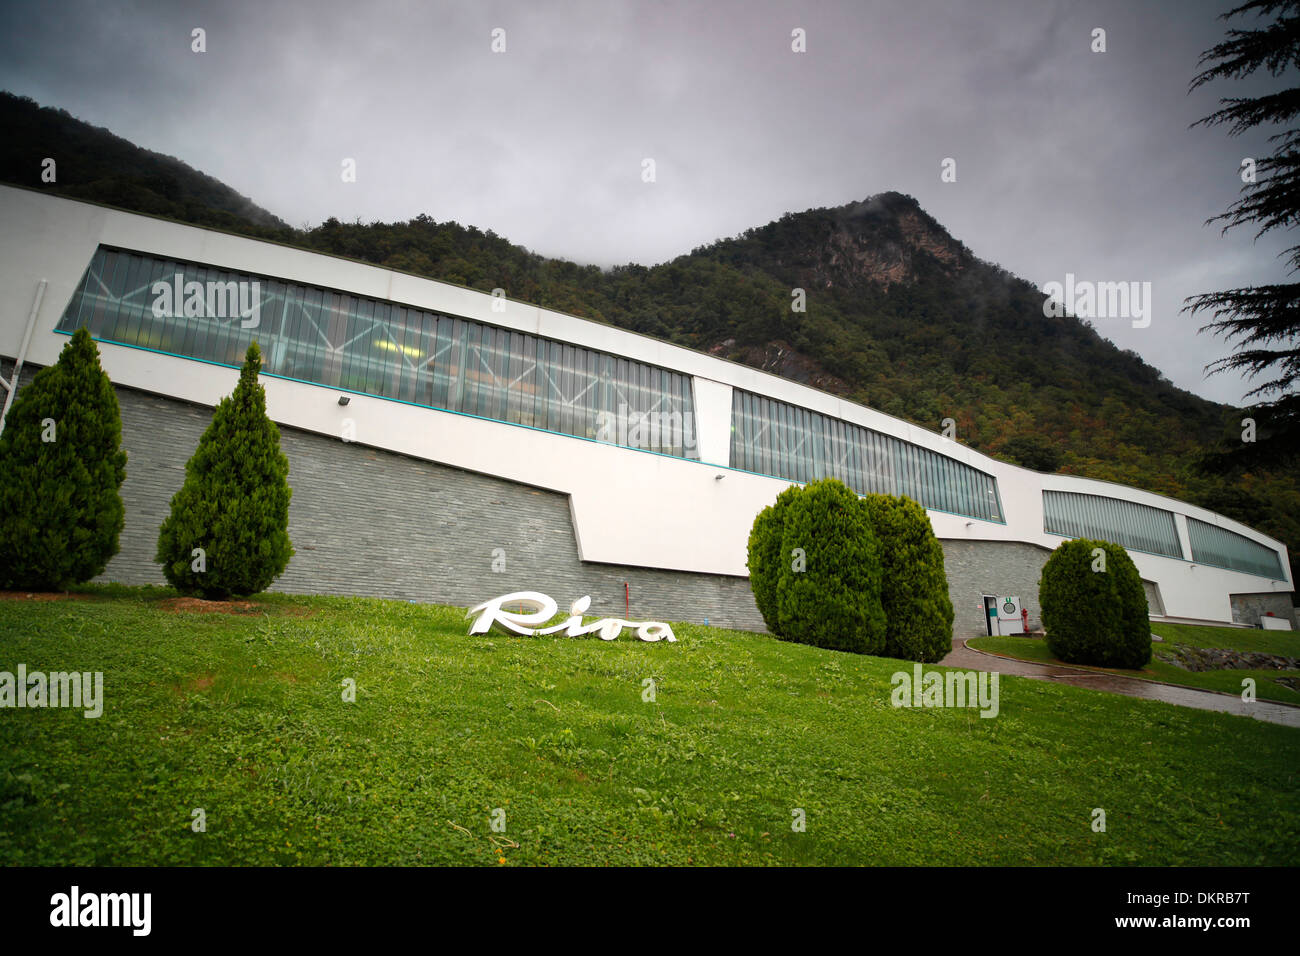 Part of the Riva yacht factory on Lake Iseo in Sarnico, Italy. - Stock Image